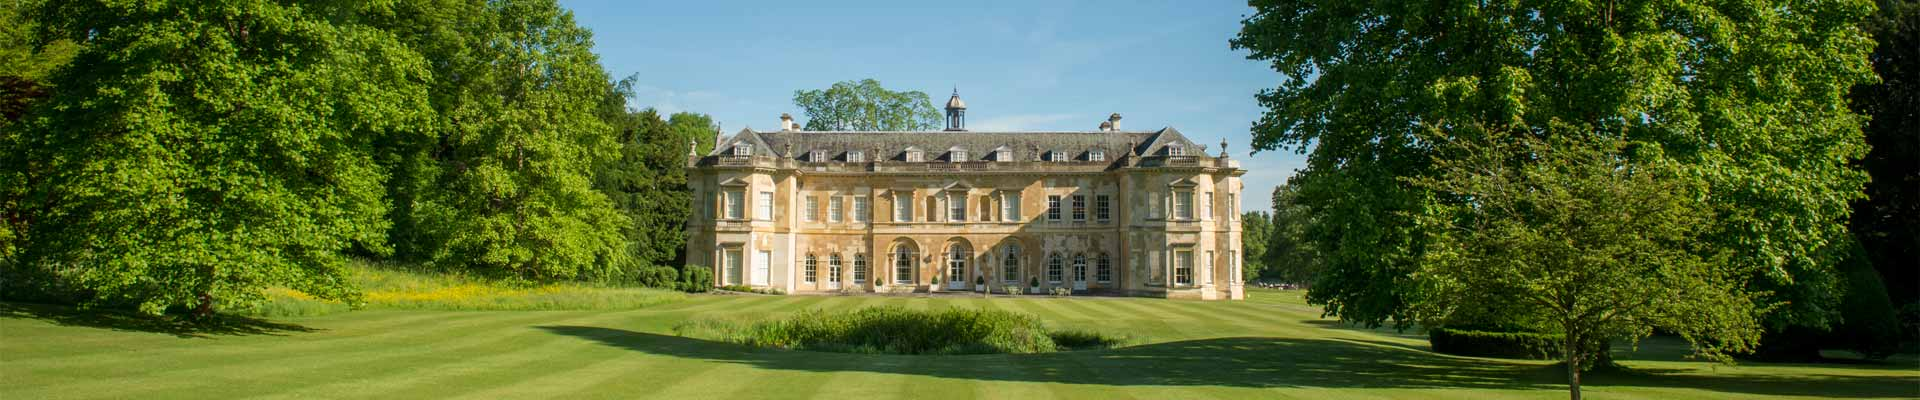 Image of the stunning Hartwell House